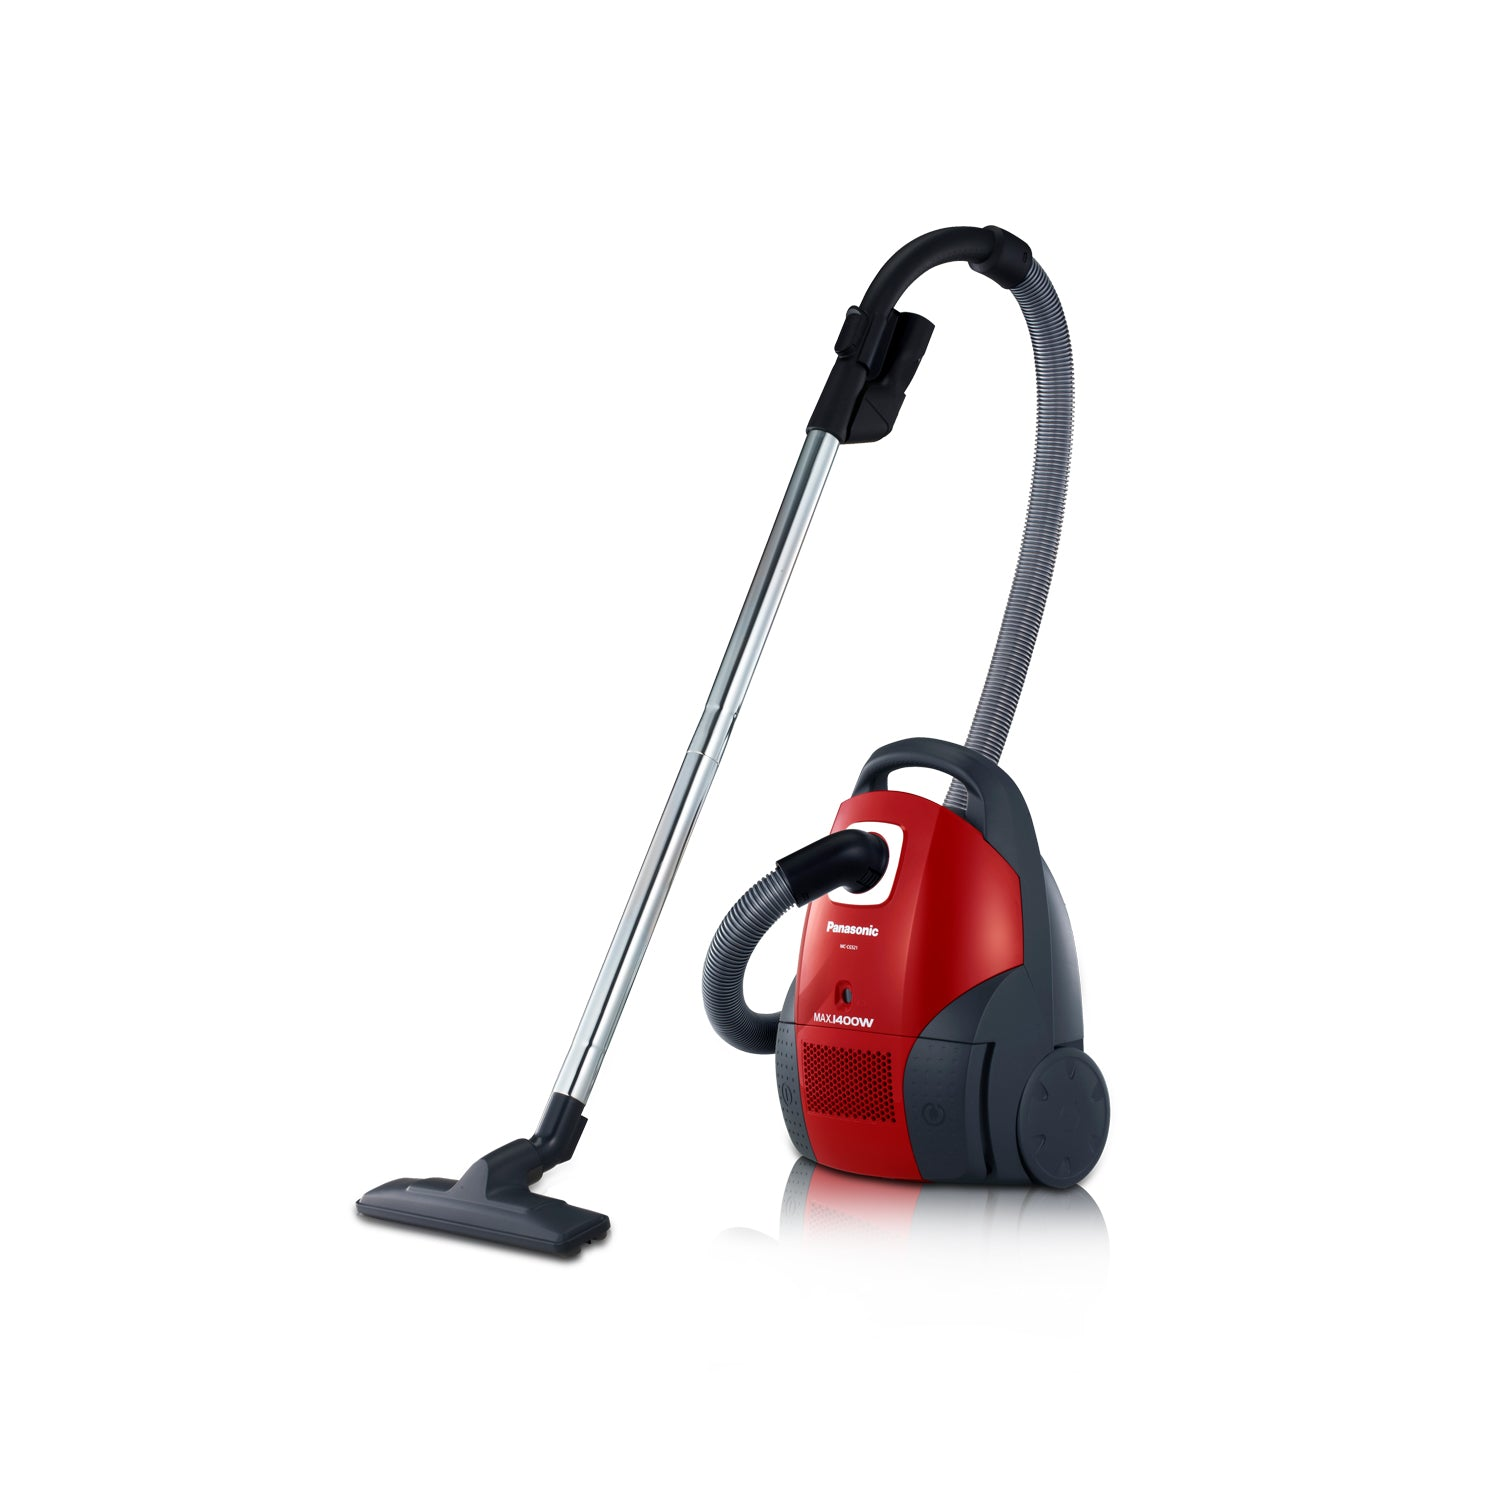 1400W Bagged Canister Vacuum Cleaner 4L